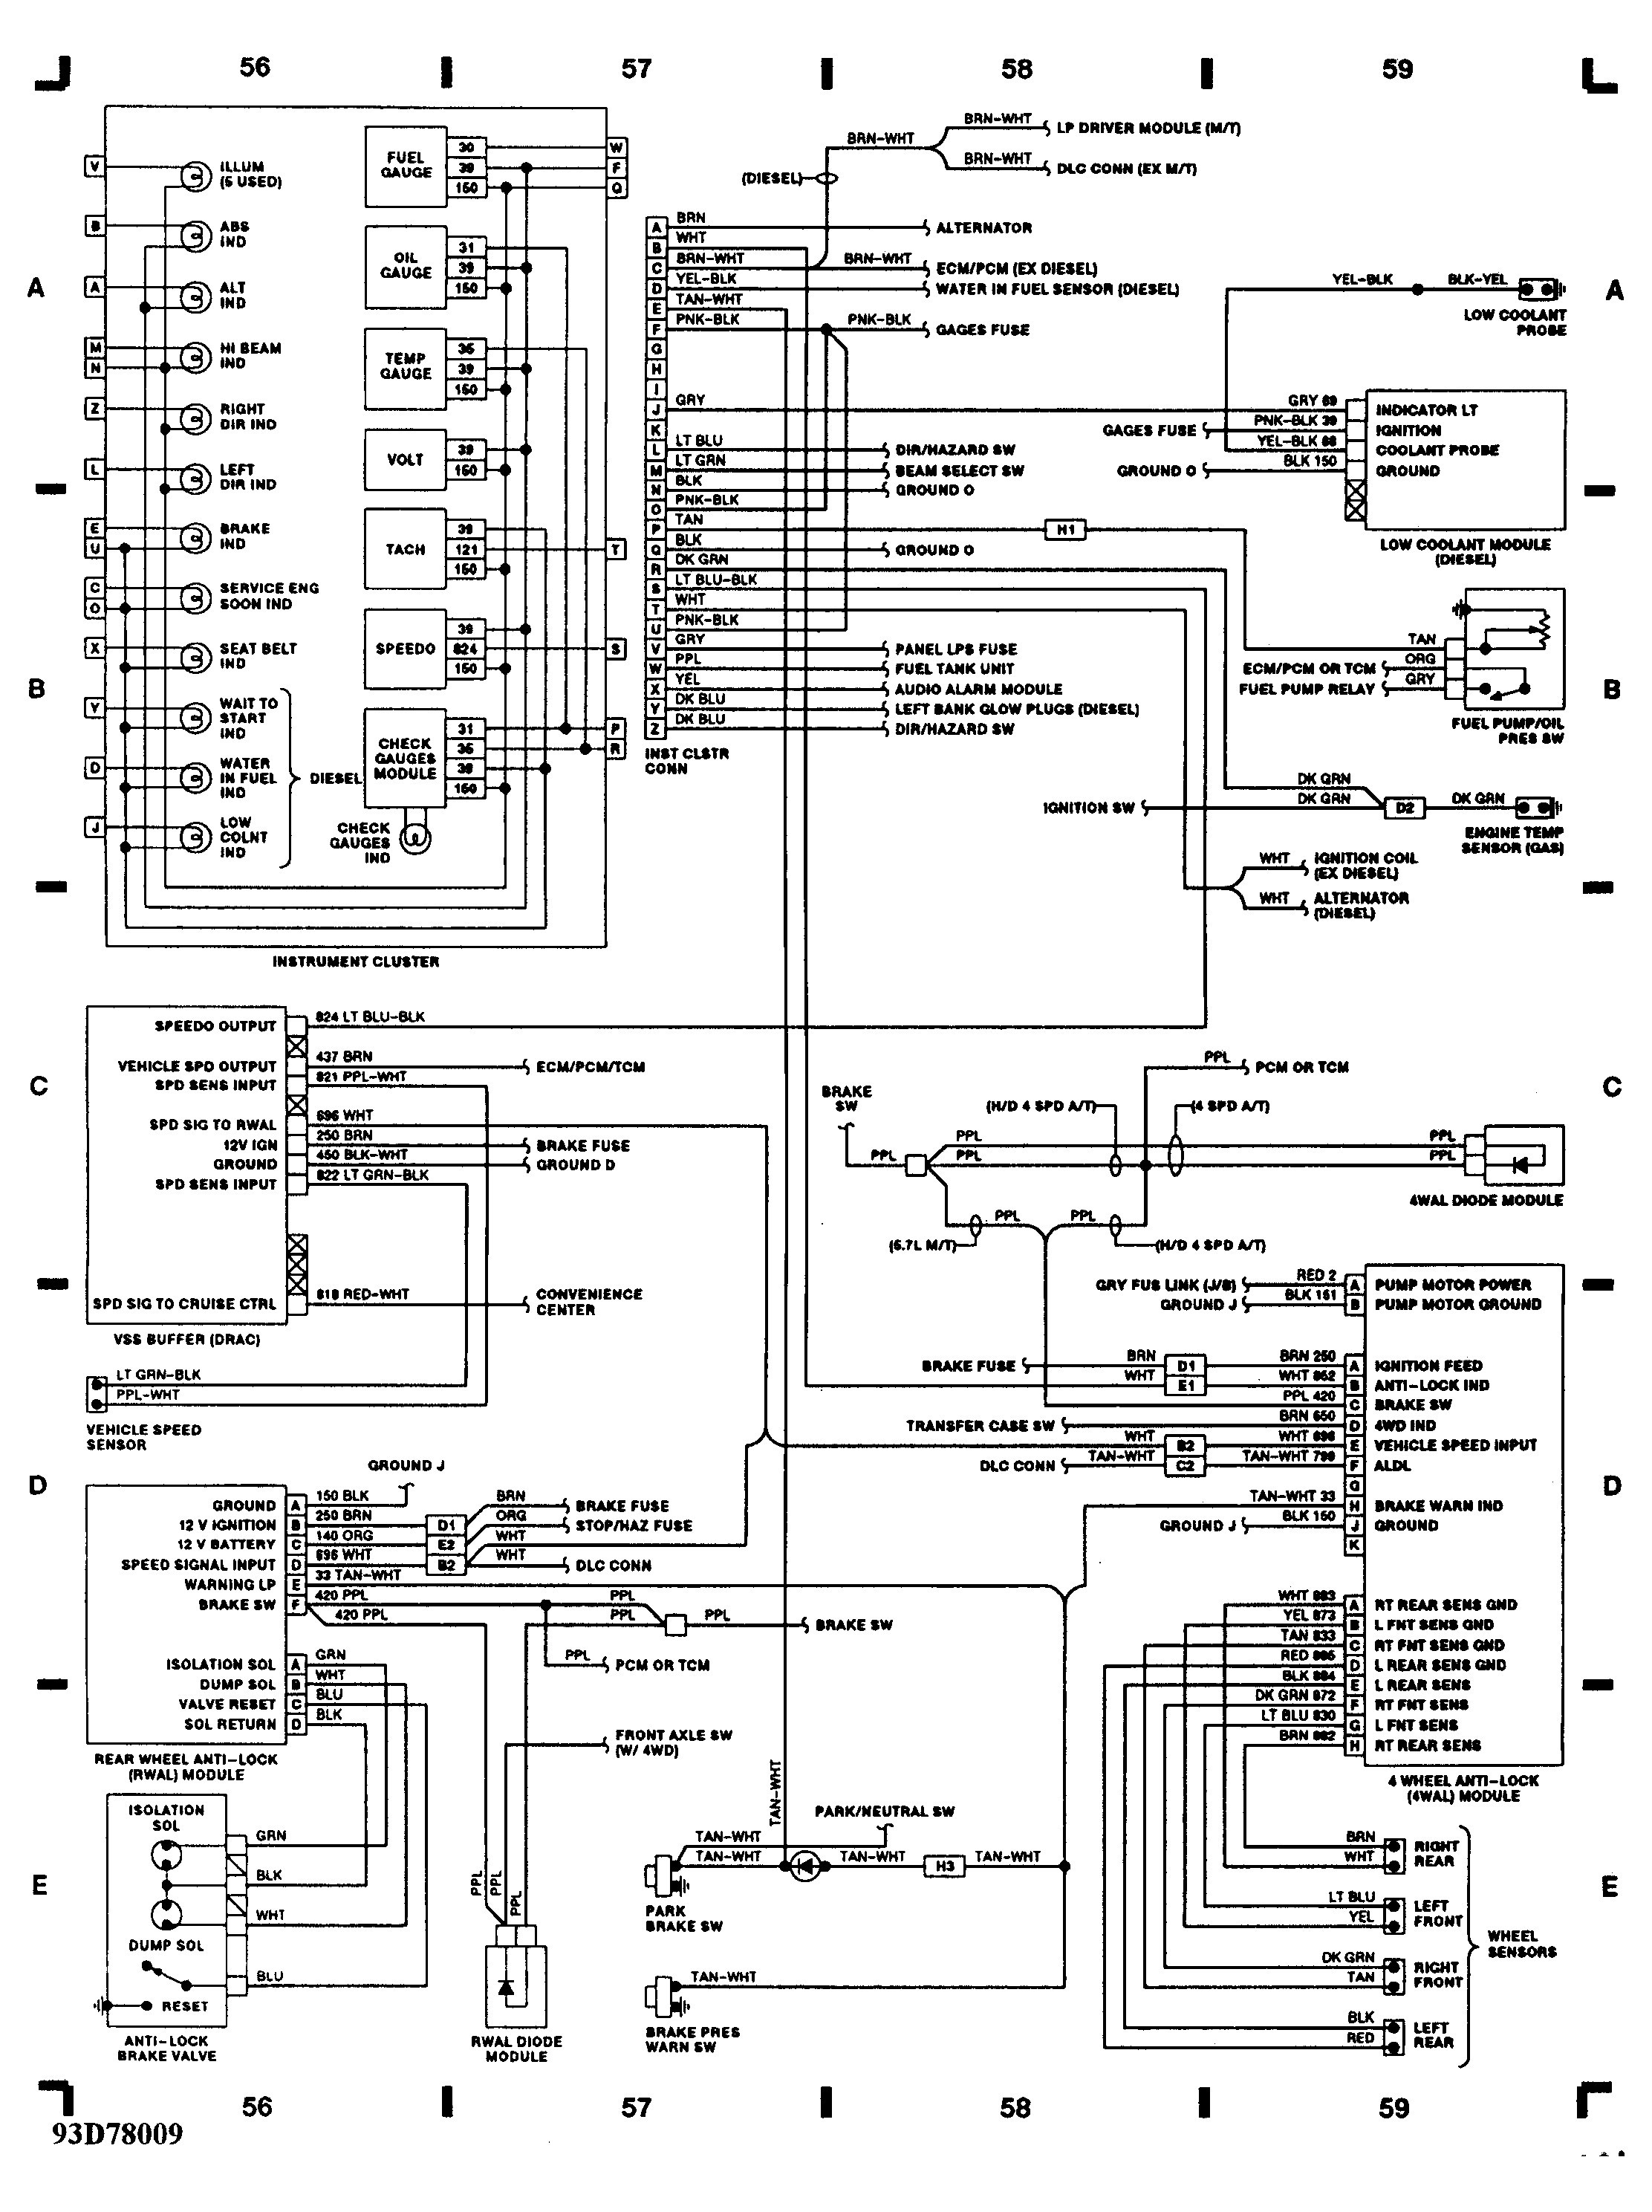 Wiring Diagram Evo 3 : Mitsubishi evolution wiring diagram for